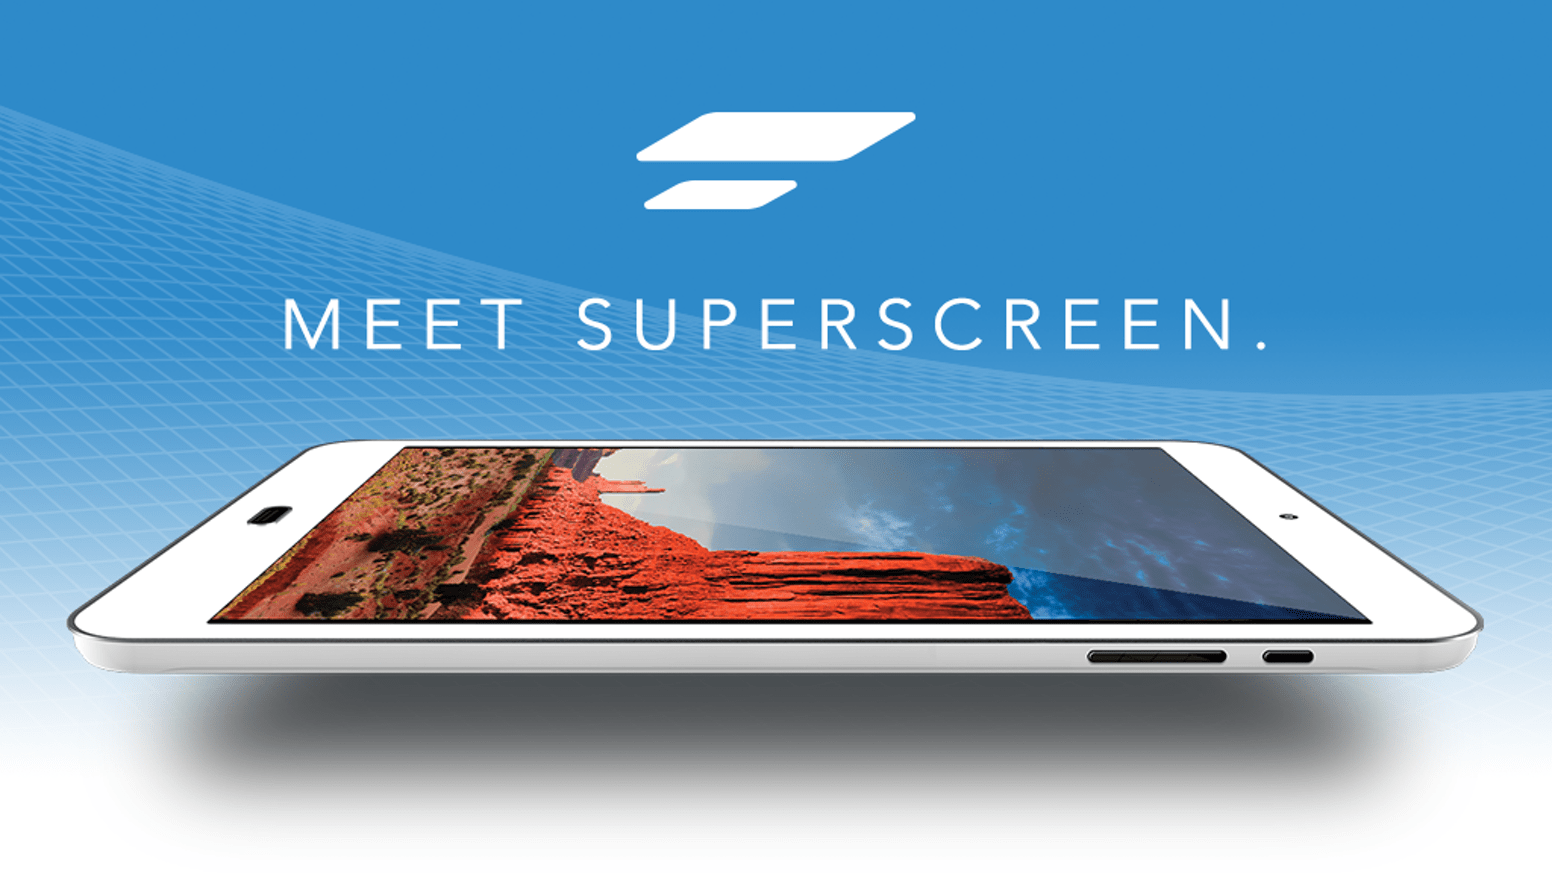 Superscreen Kickstarter Updates Raise Questions About Recent News